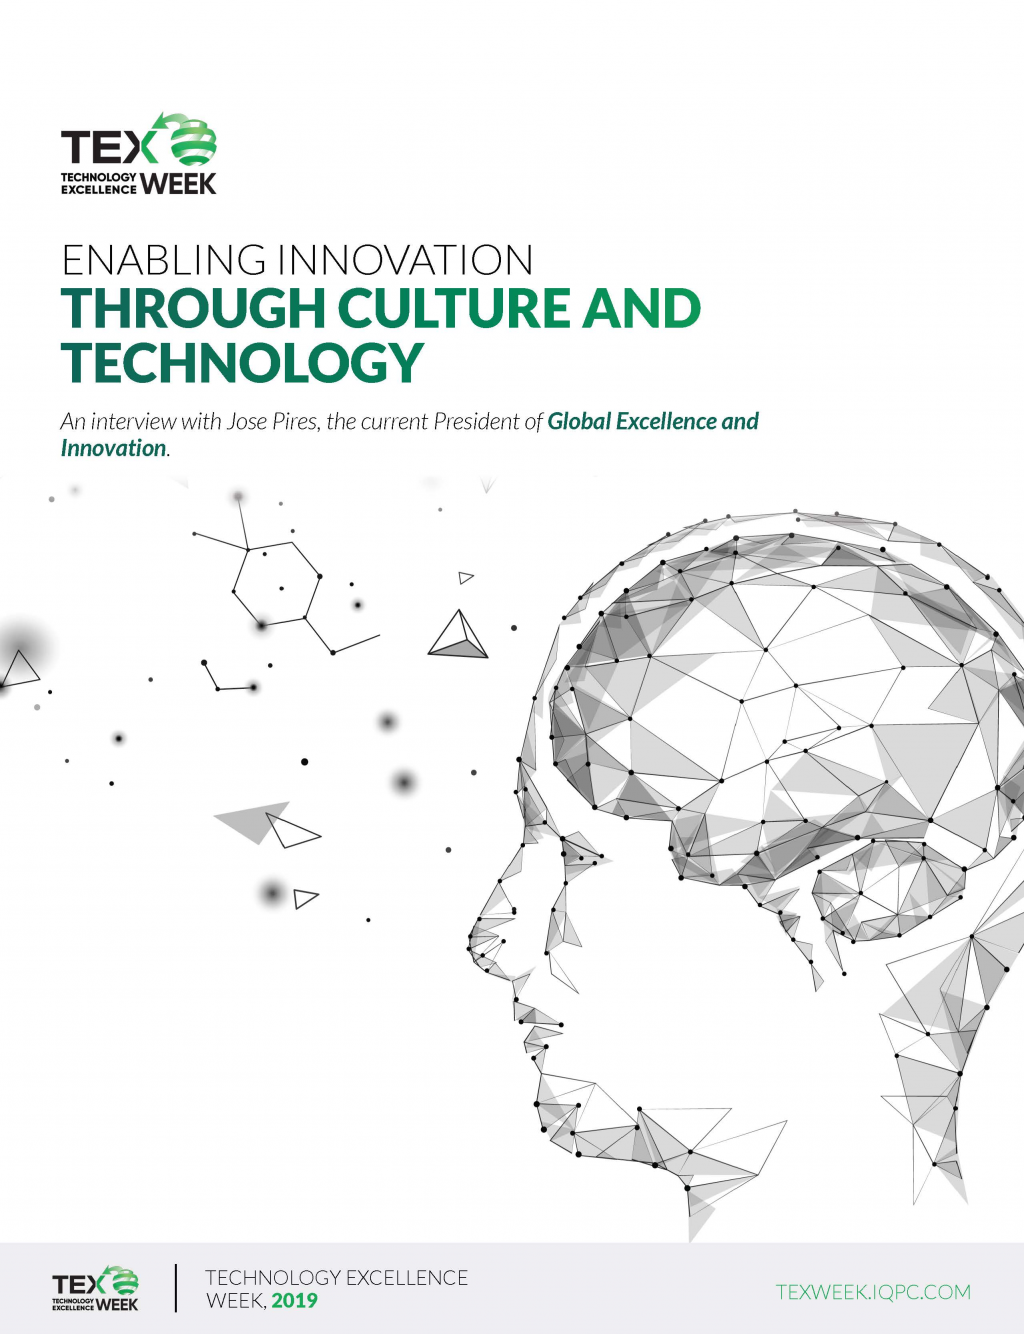 Enabling Innovation through Culture and Technology